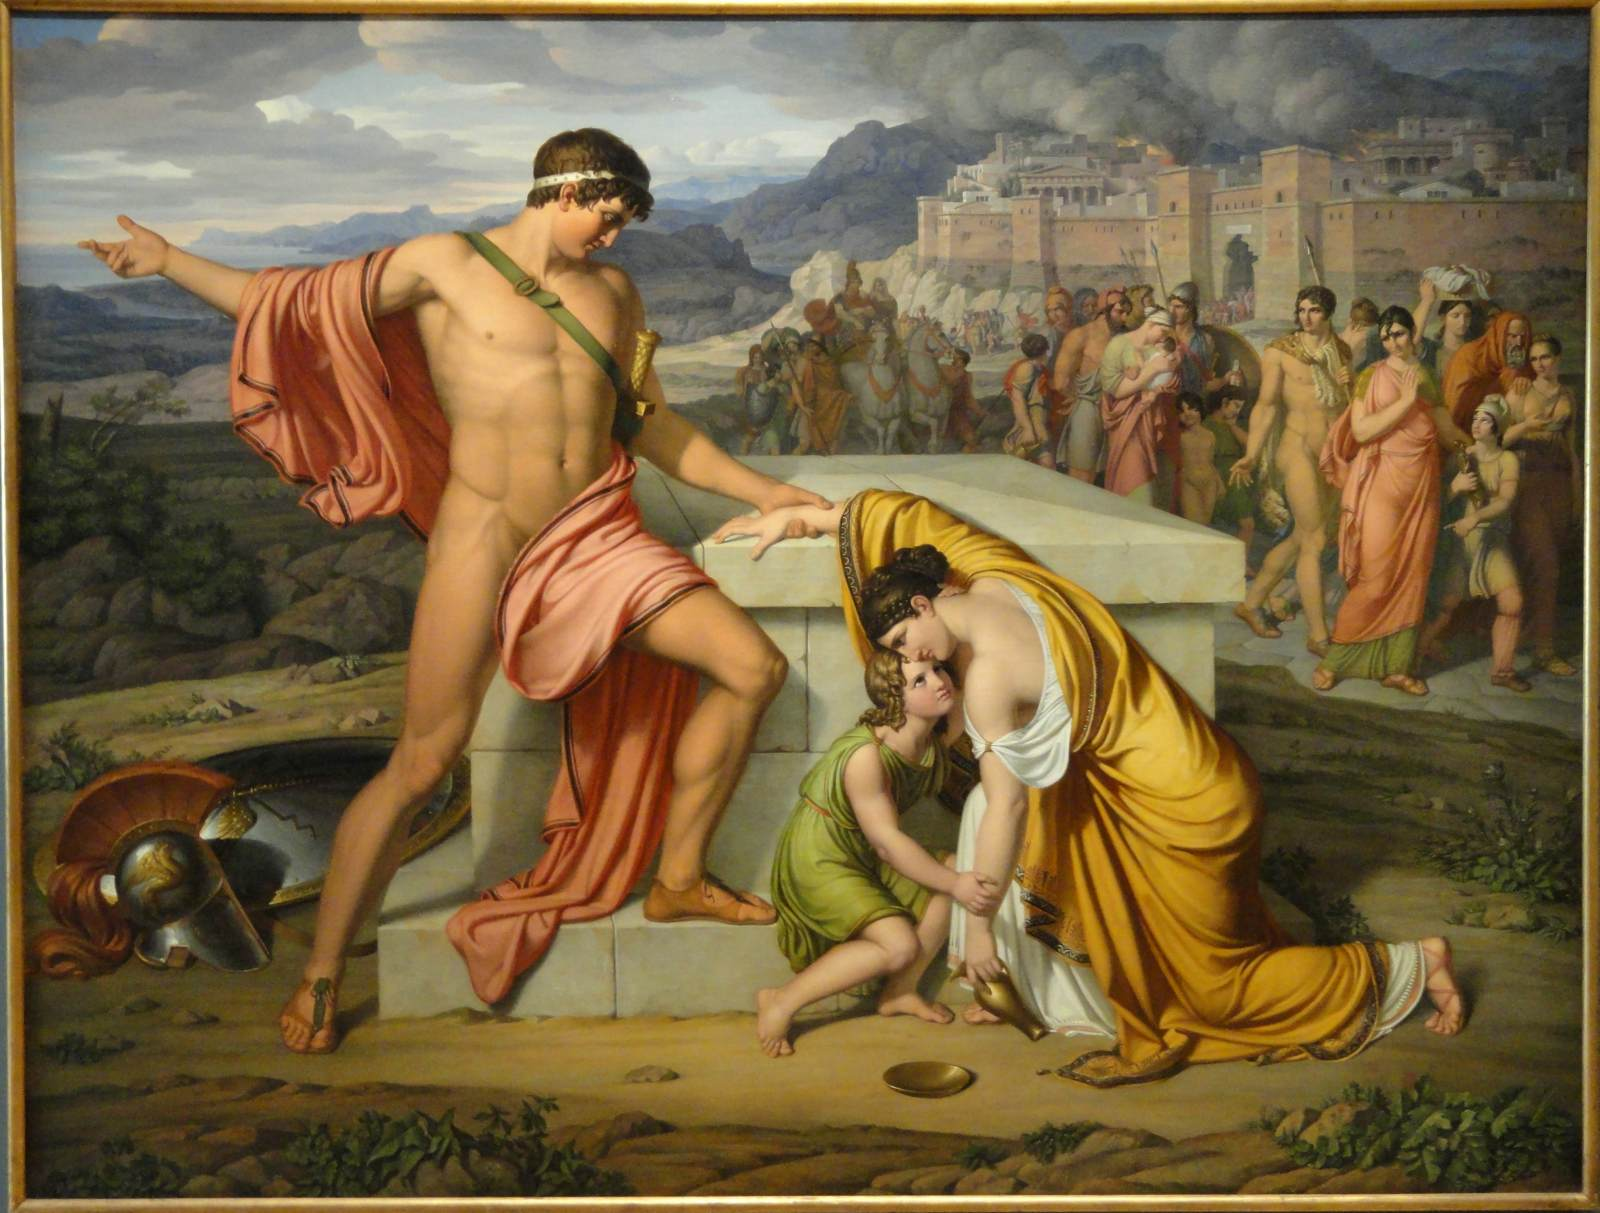 the relationship between homeric greek men and women as described in hector and andromache In the iliad have inherent characteristics that provide the driving force behind  describe the relationship between the gods, perhaps because their immortality, in  hector is a prime example of a human figure who finds himself torn between two forces: his love for his growing family, and his duty as a.